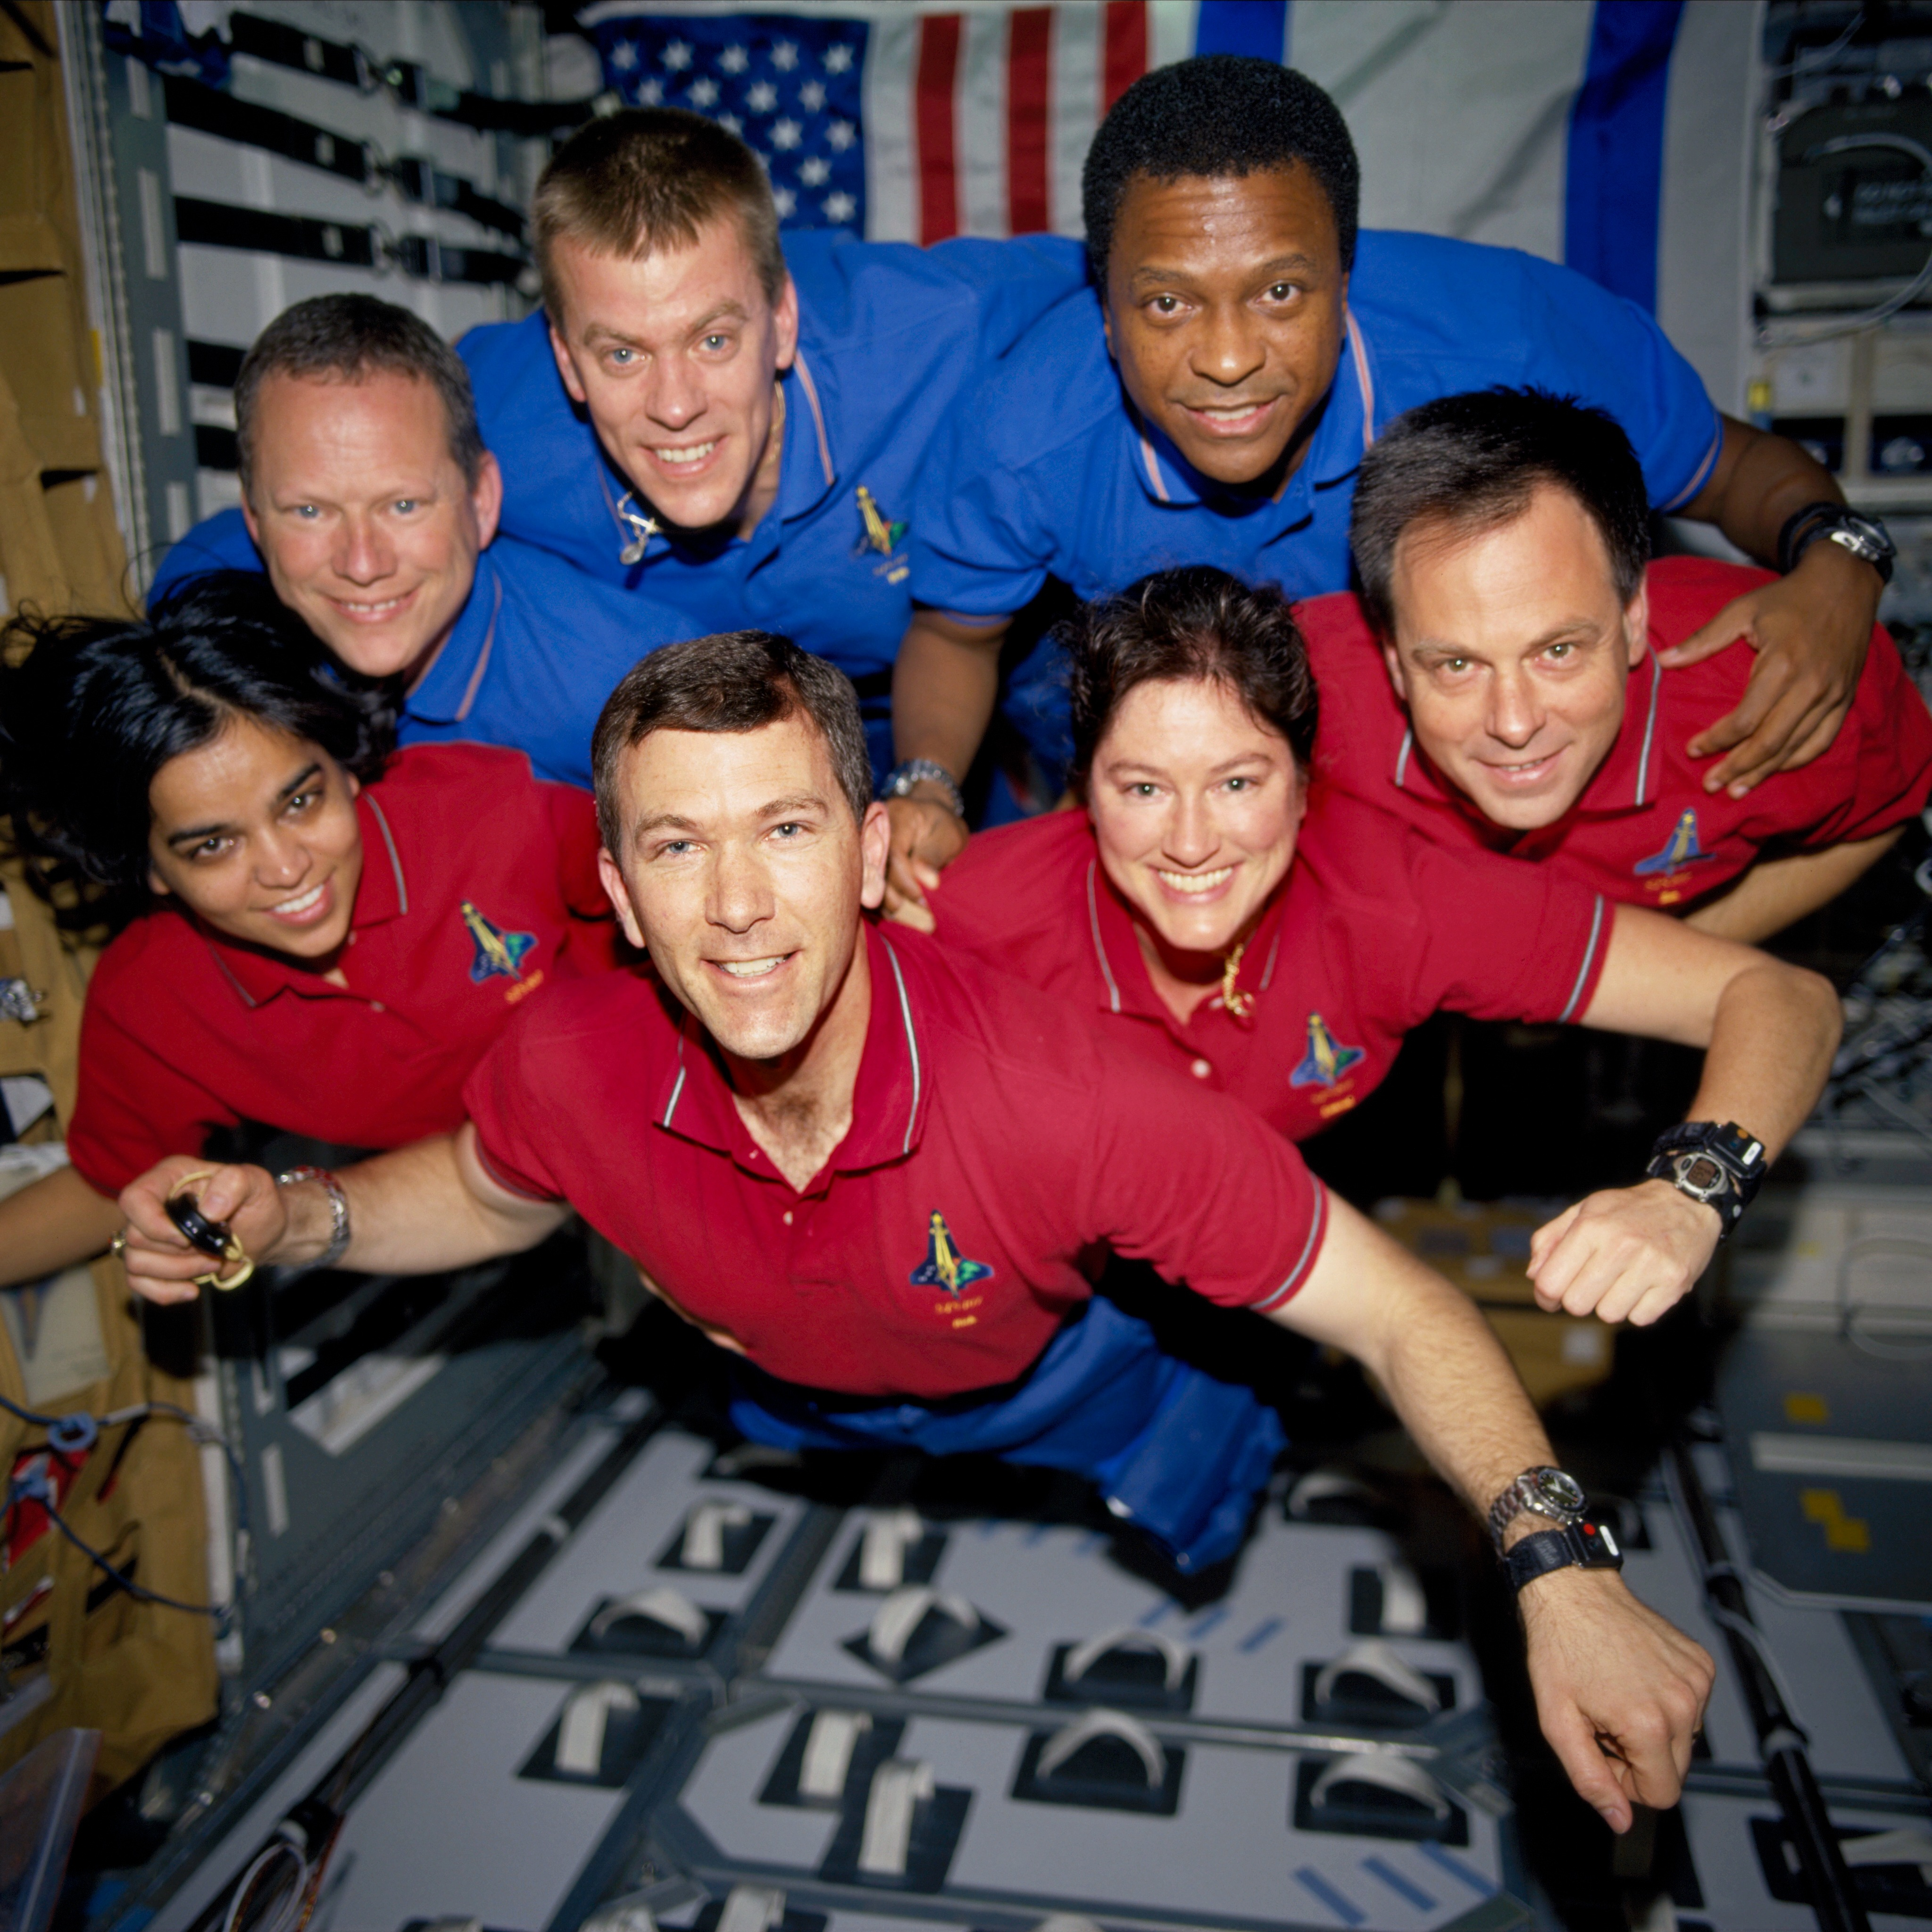 Folded Corner: The STS-107 crewmembers strike a 'flying' pose. Picture was recovered from a roll of film found in the STS-107 crash debris.